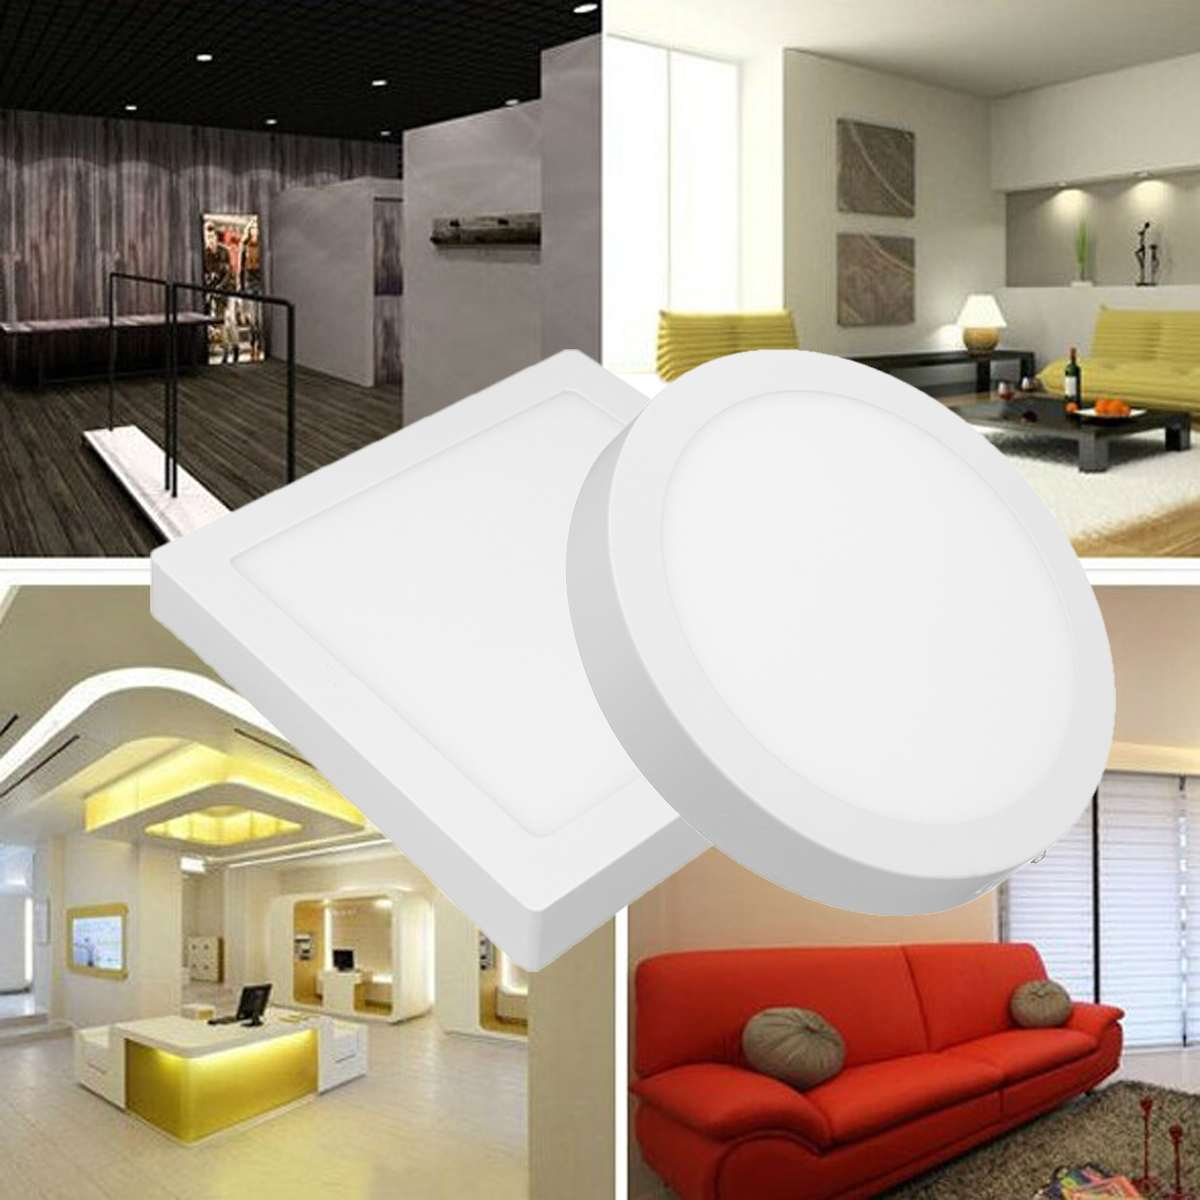 Ceiling Lights & Fans Friendly Wongshi Modern 2.4g Ir Remote Control Black White Iron Led Ceiling Lamp Surface Mounted Panel Simple Ceiling Light Always Buy Good